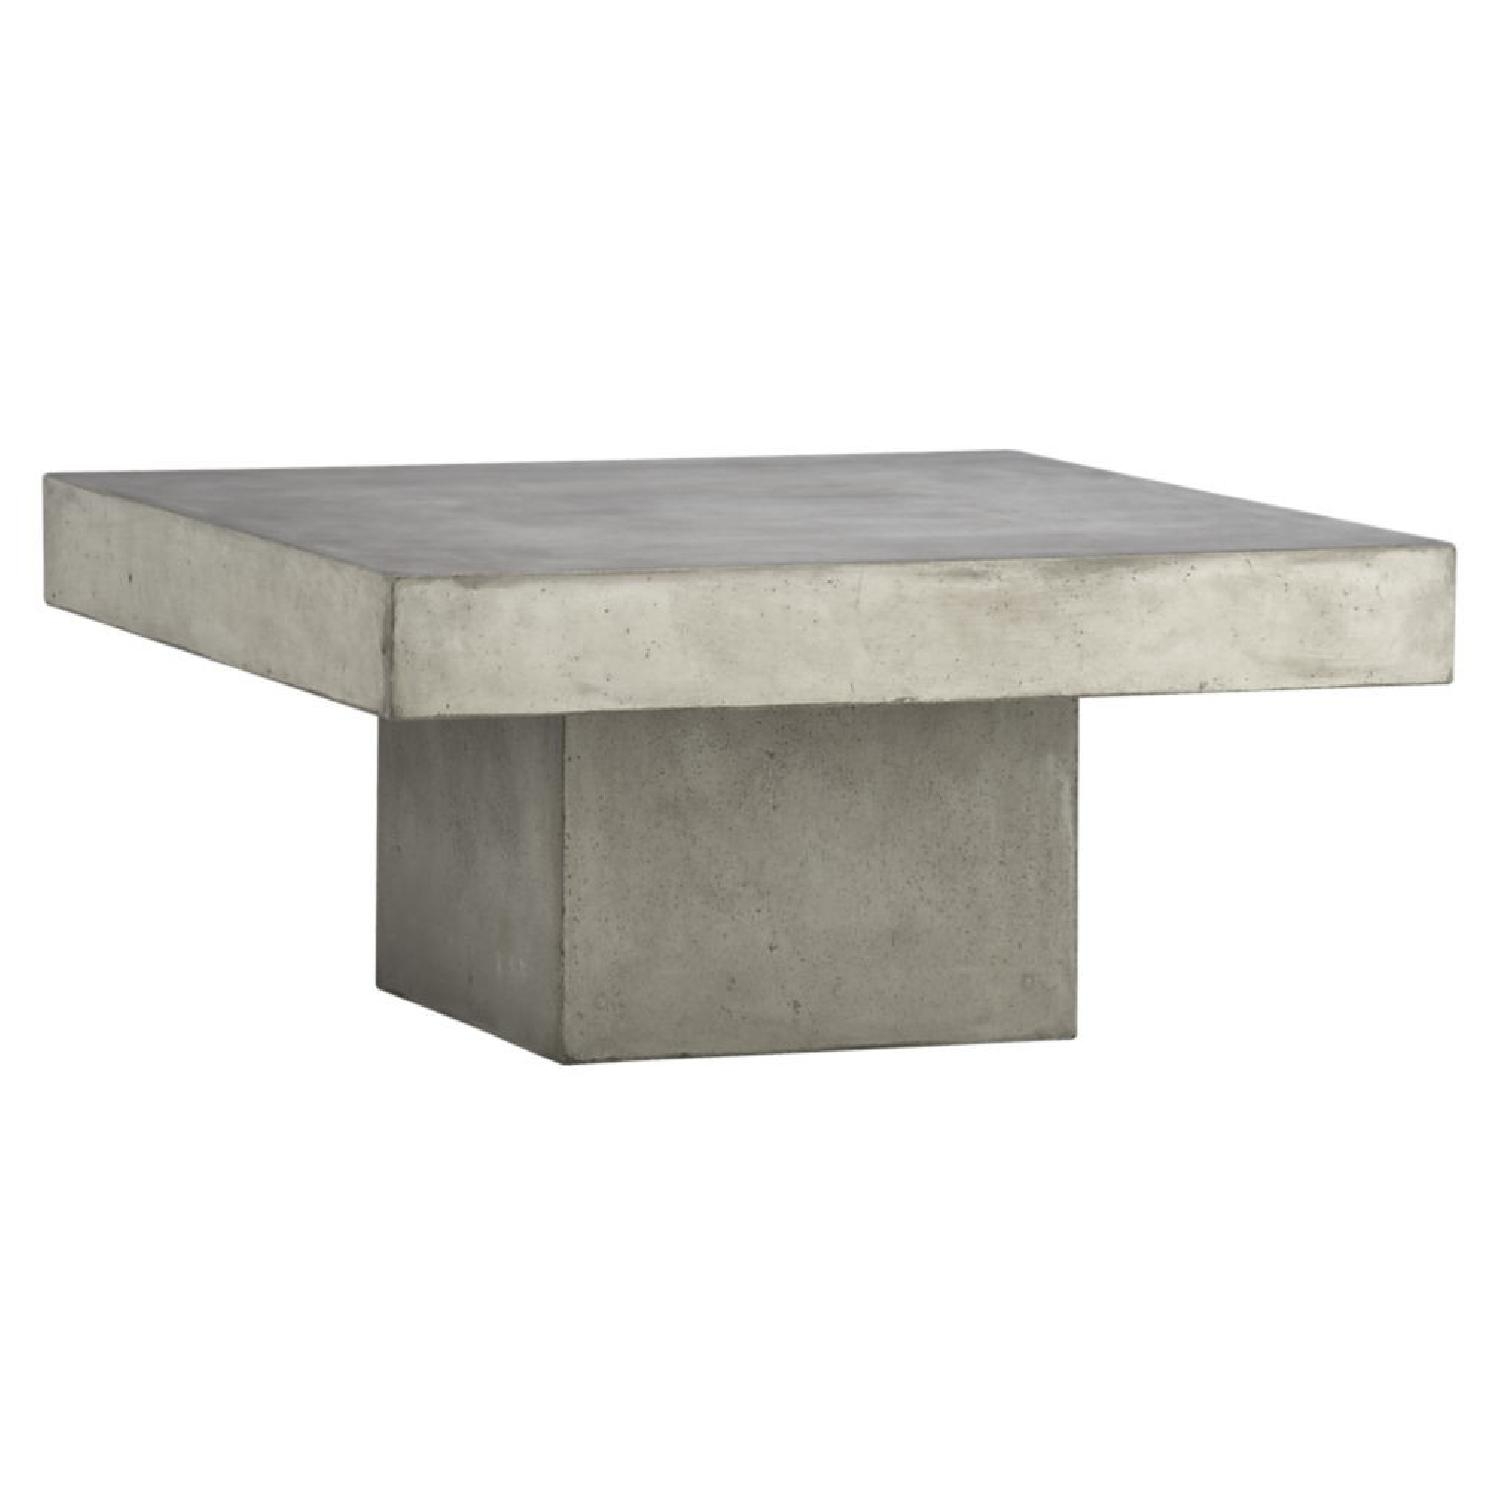 CB2 Cement Element Table